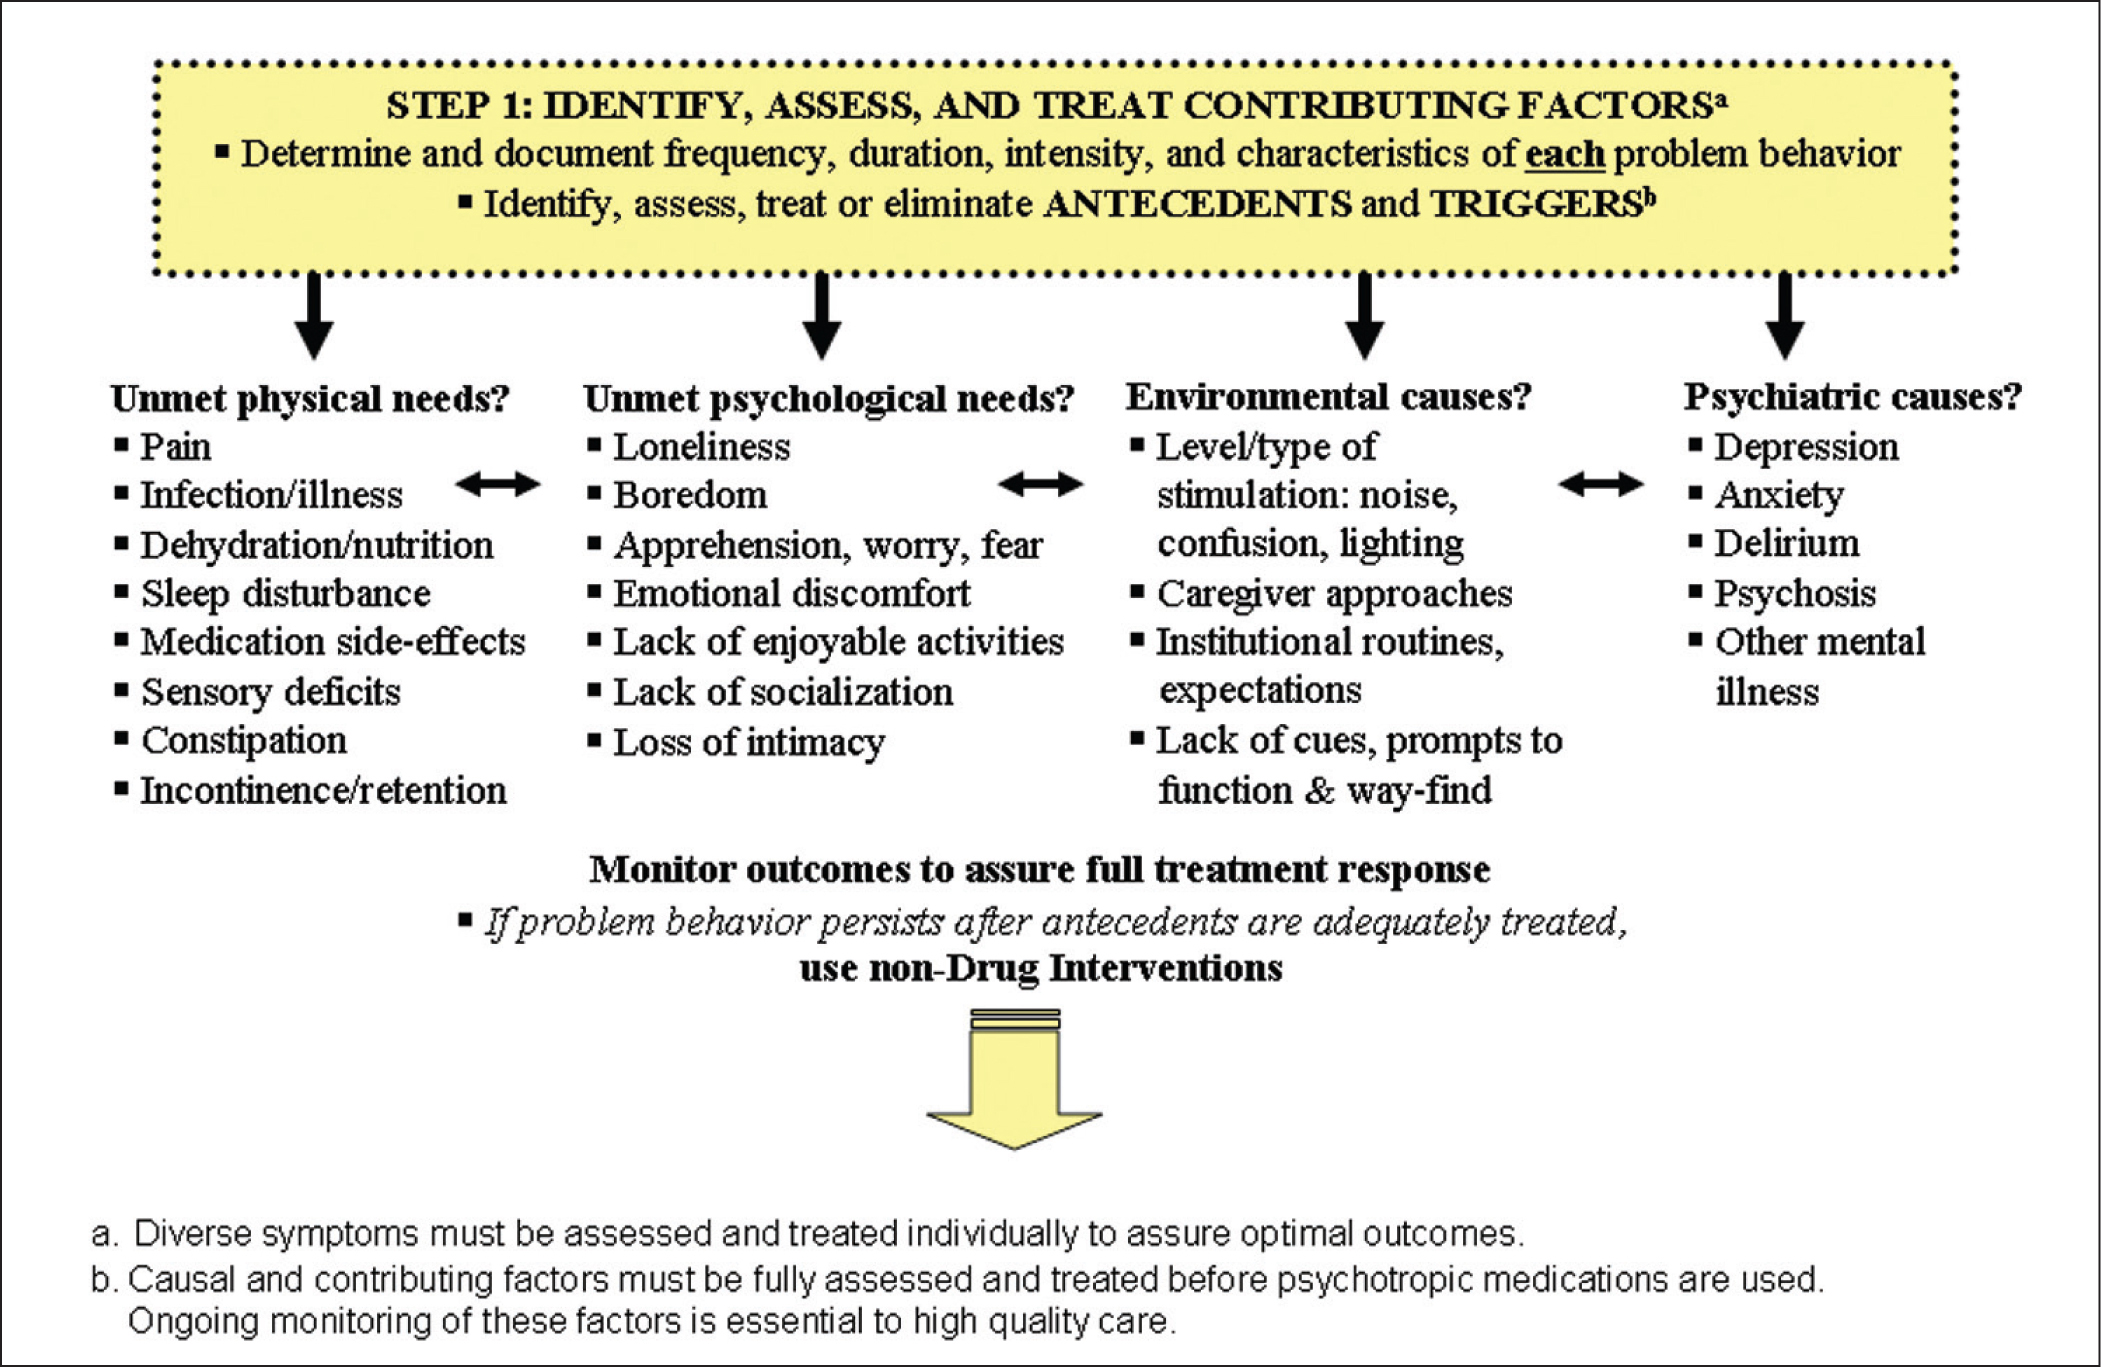 Algorithm for Treating Behavioral and Psychological Symptoms of Dementia, Step 1.Source. Iowa Geriatric Education Center (http://www.healthcare.uiowa.edu/igec/IAADAPT). Used with permission.